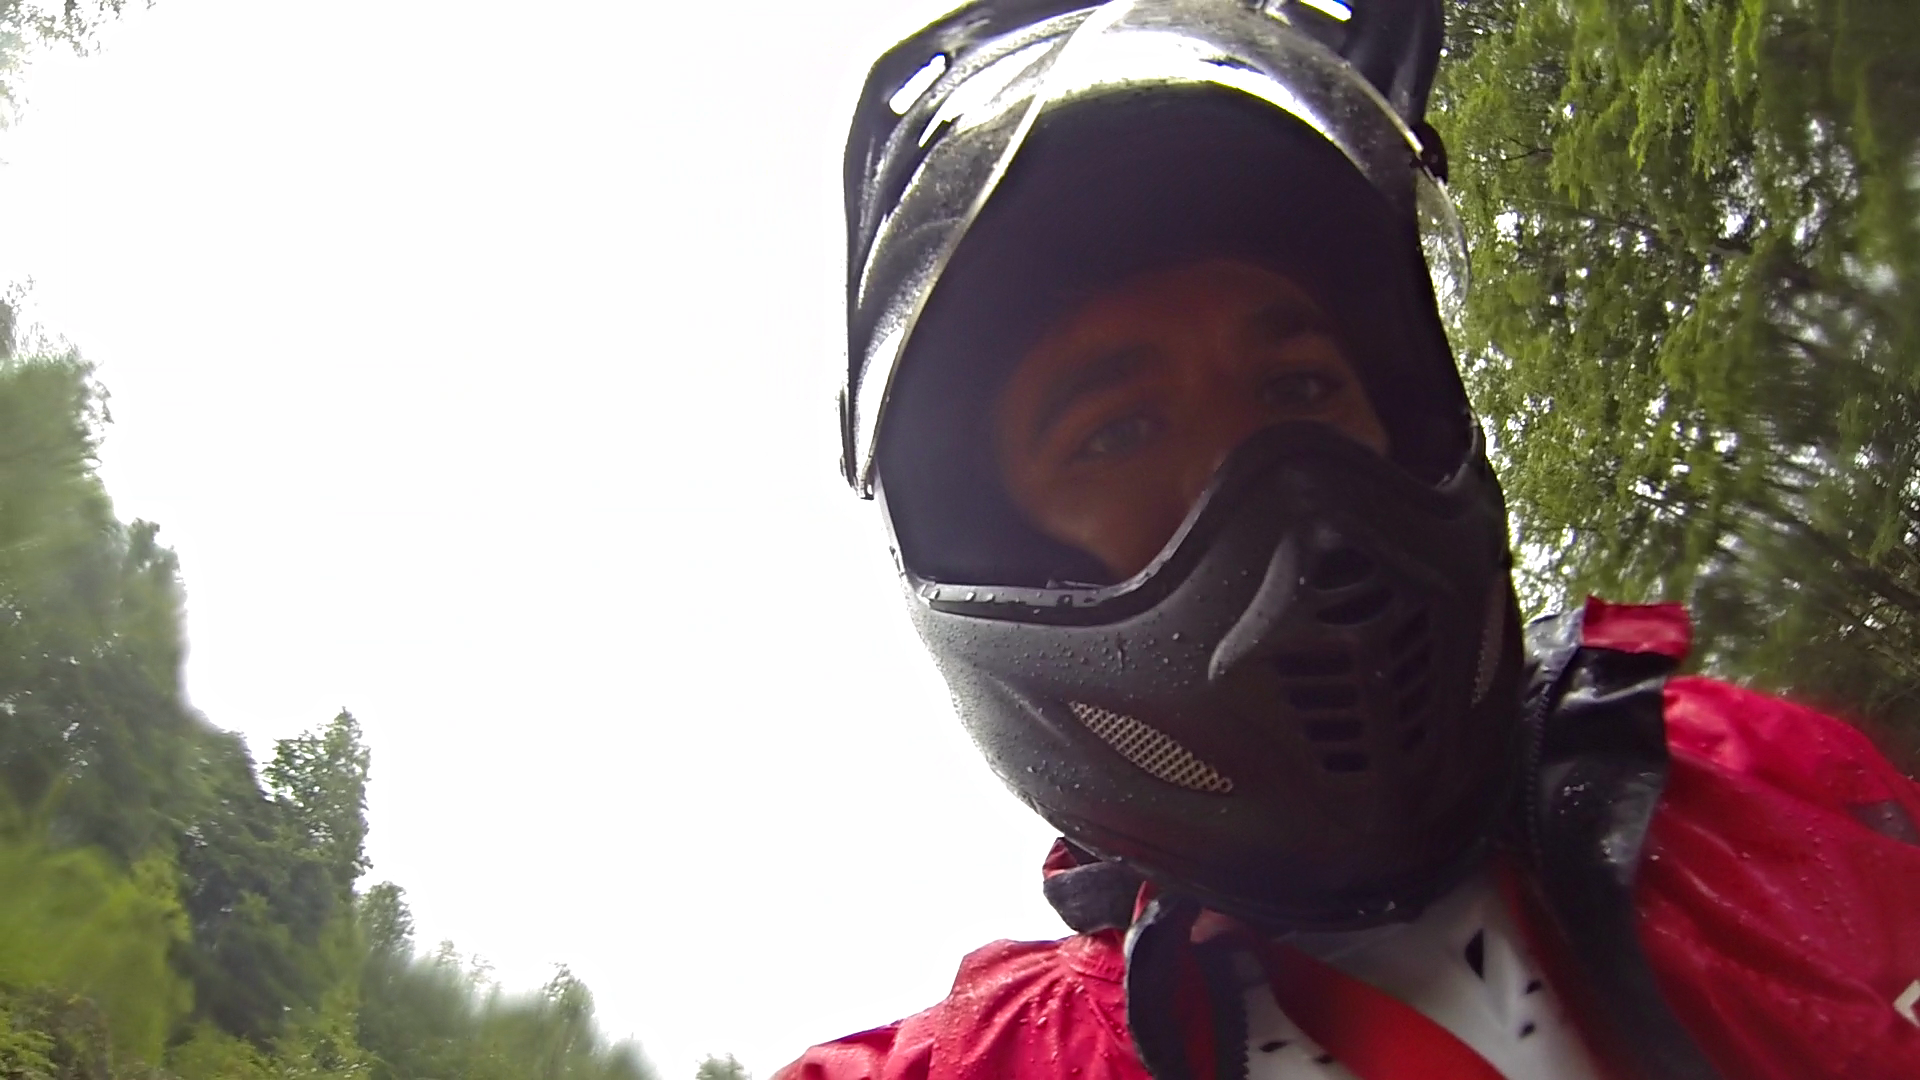 A rainy first day of riding